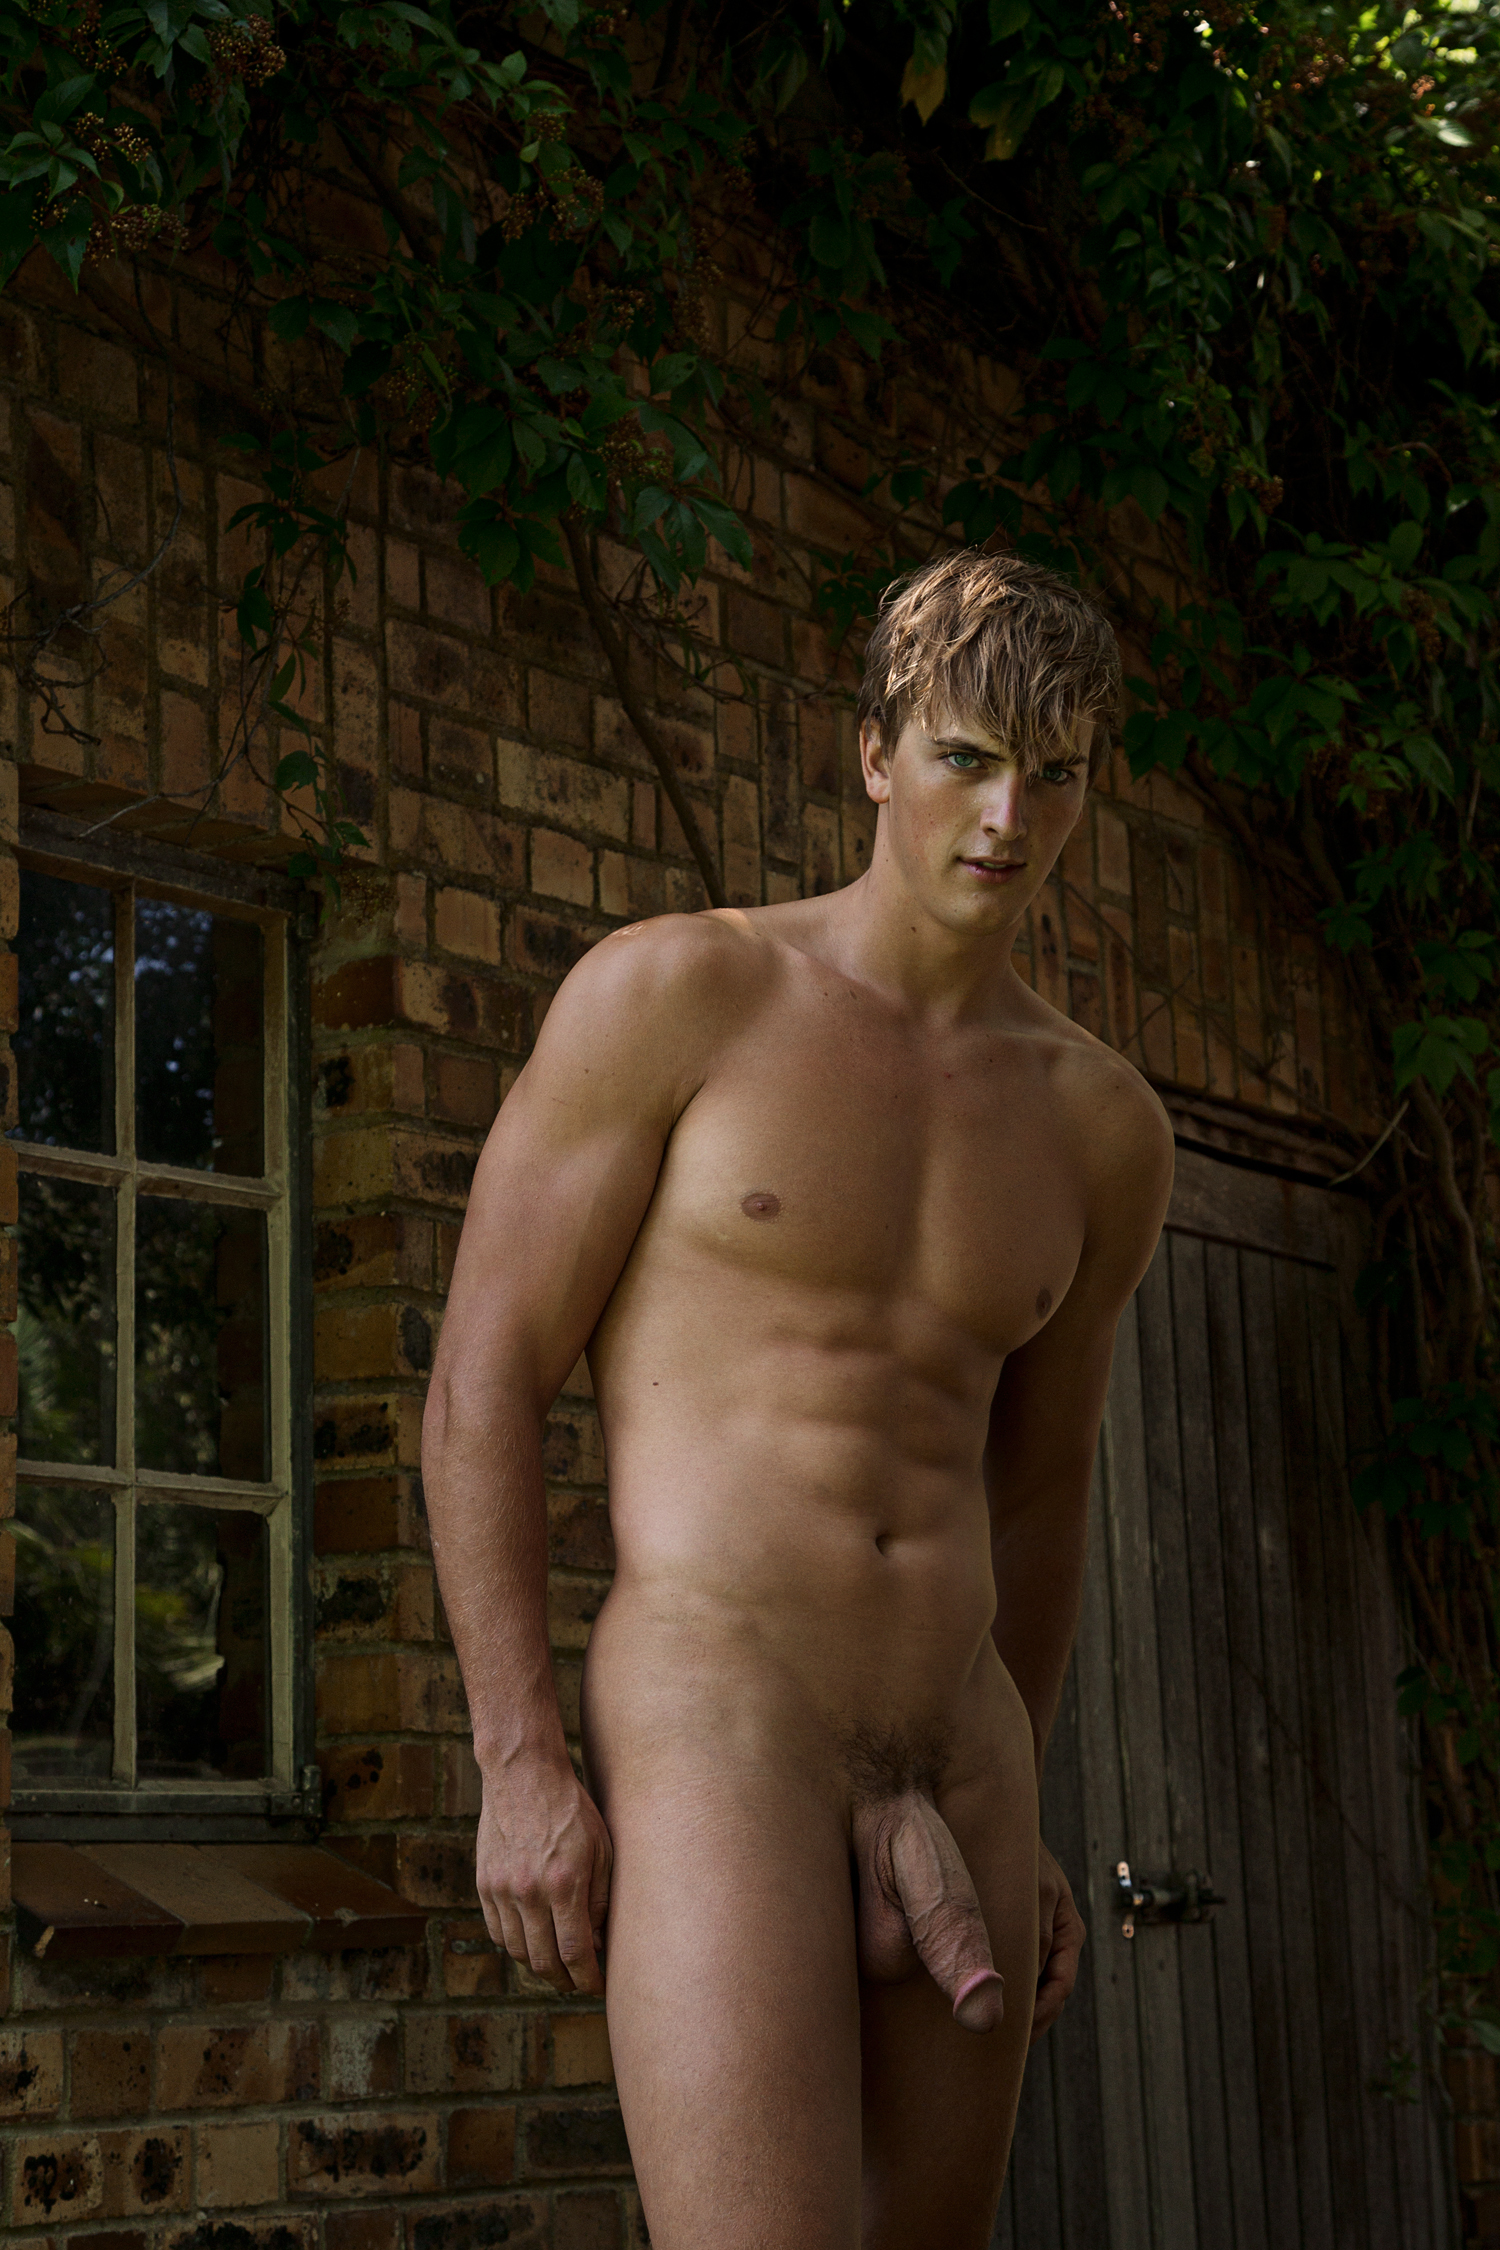 from Trace gay nude jock